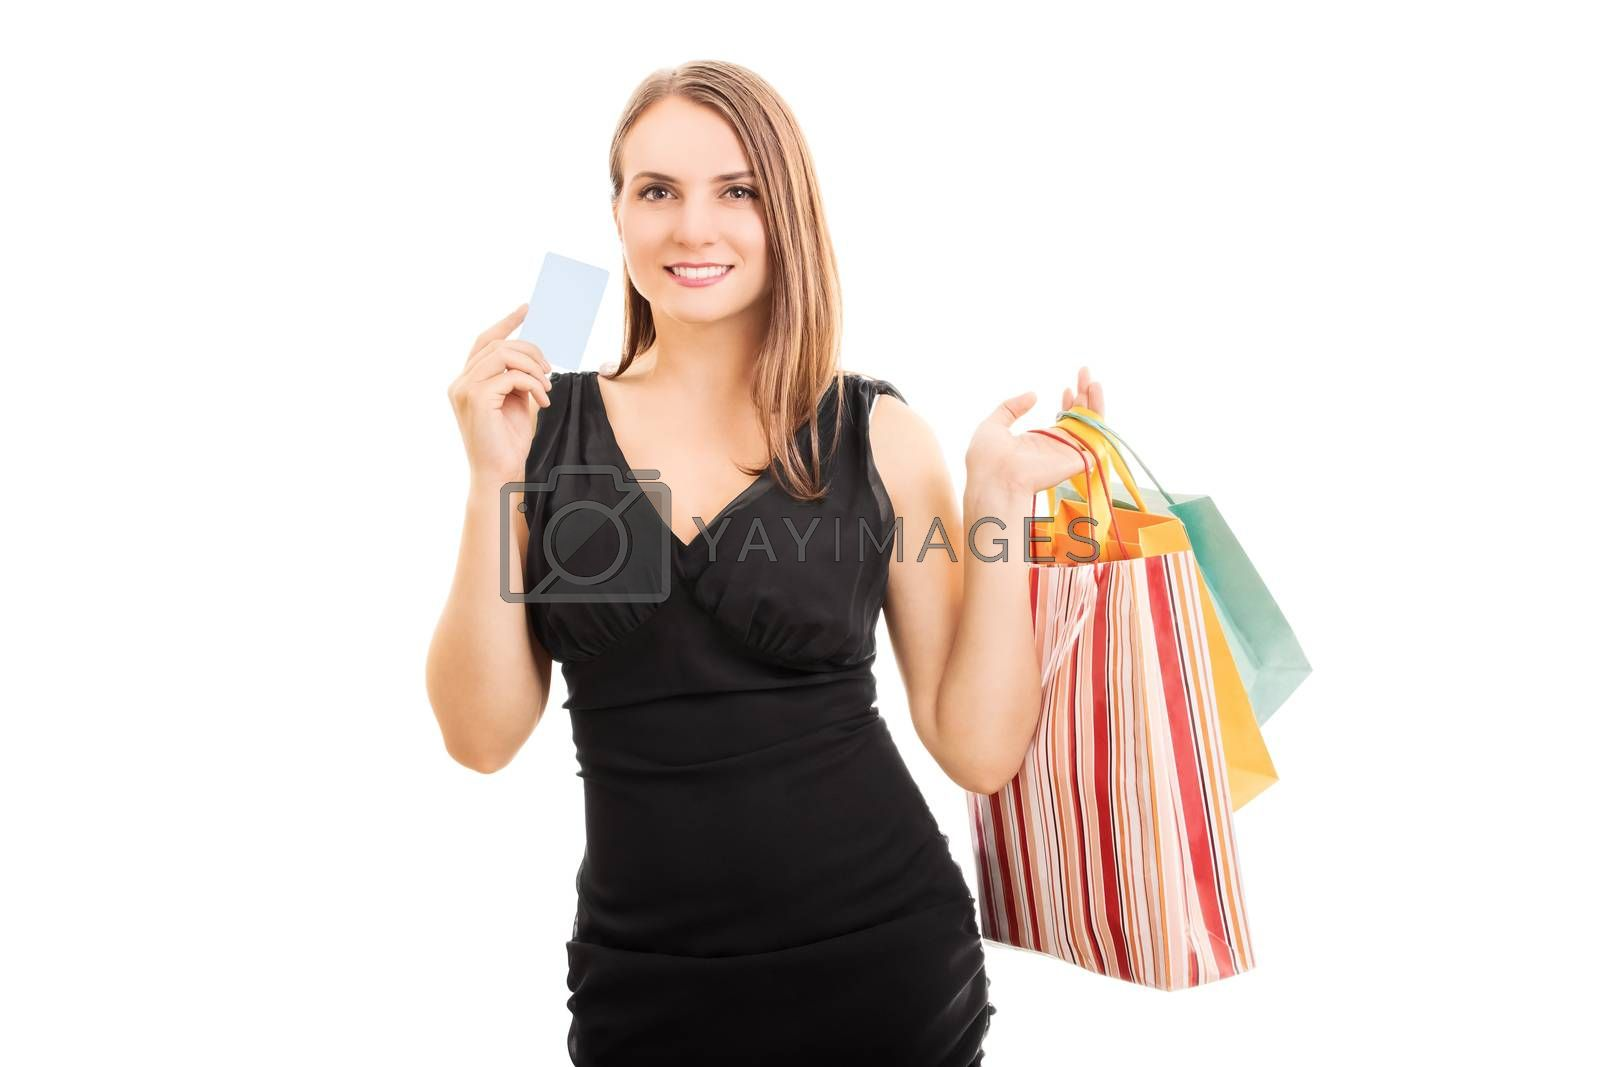 A portrait of an elegant beautiful young woman holding shopping bags and a card, isolated on white background.